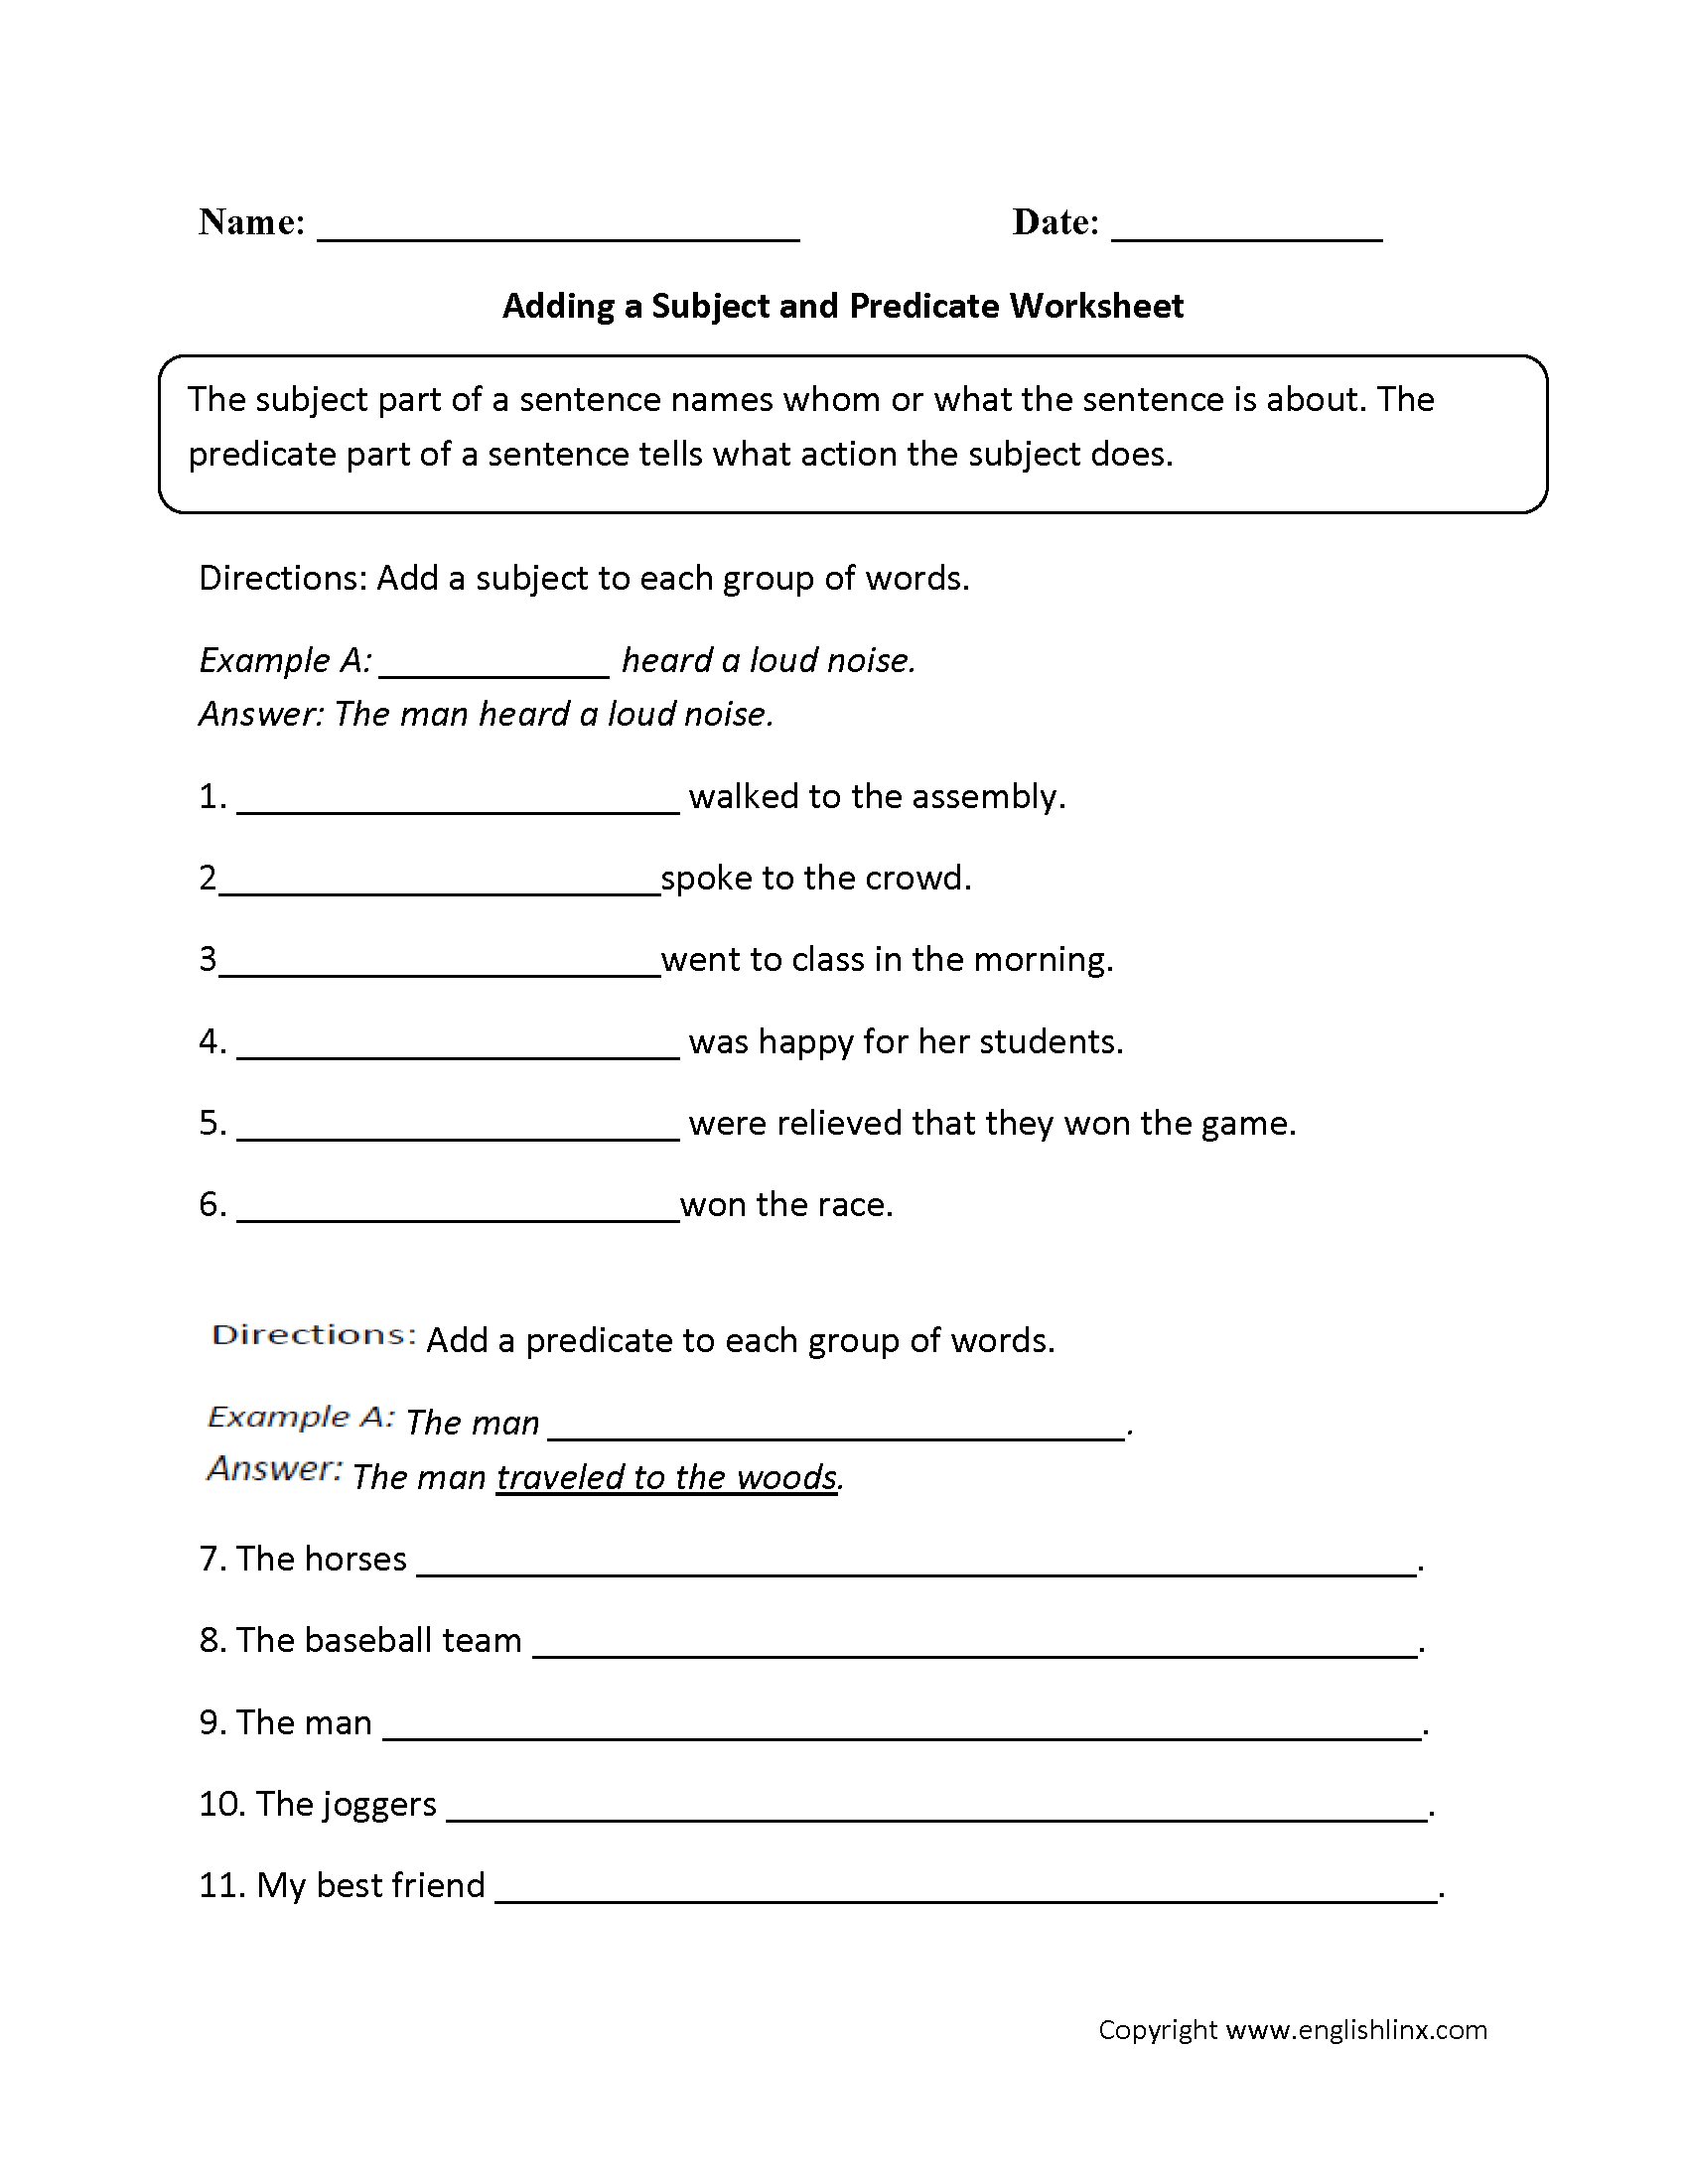 Englishlinx | Subject And Predicate Worksheets - 9Th Grade English | 9Th Grade English Worksheets Printable Free